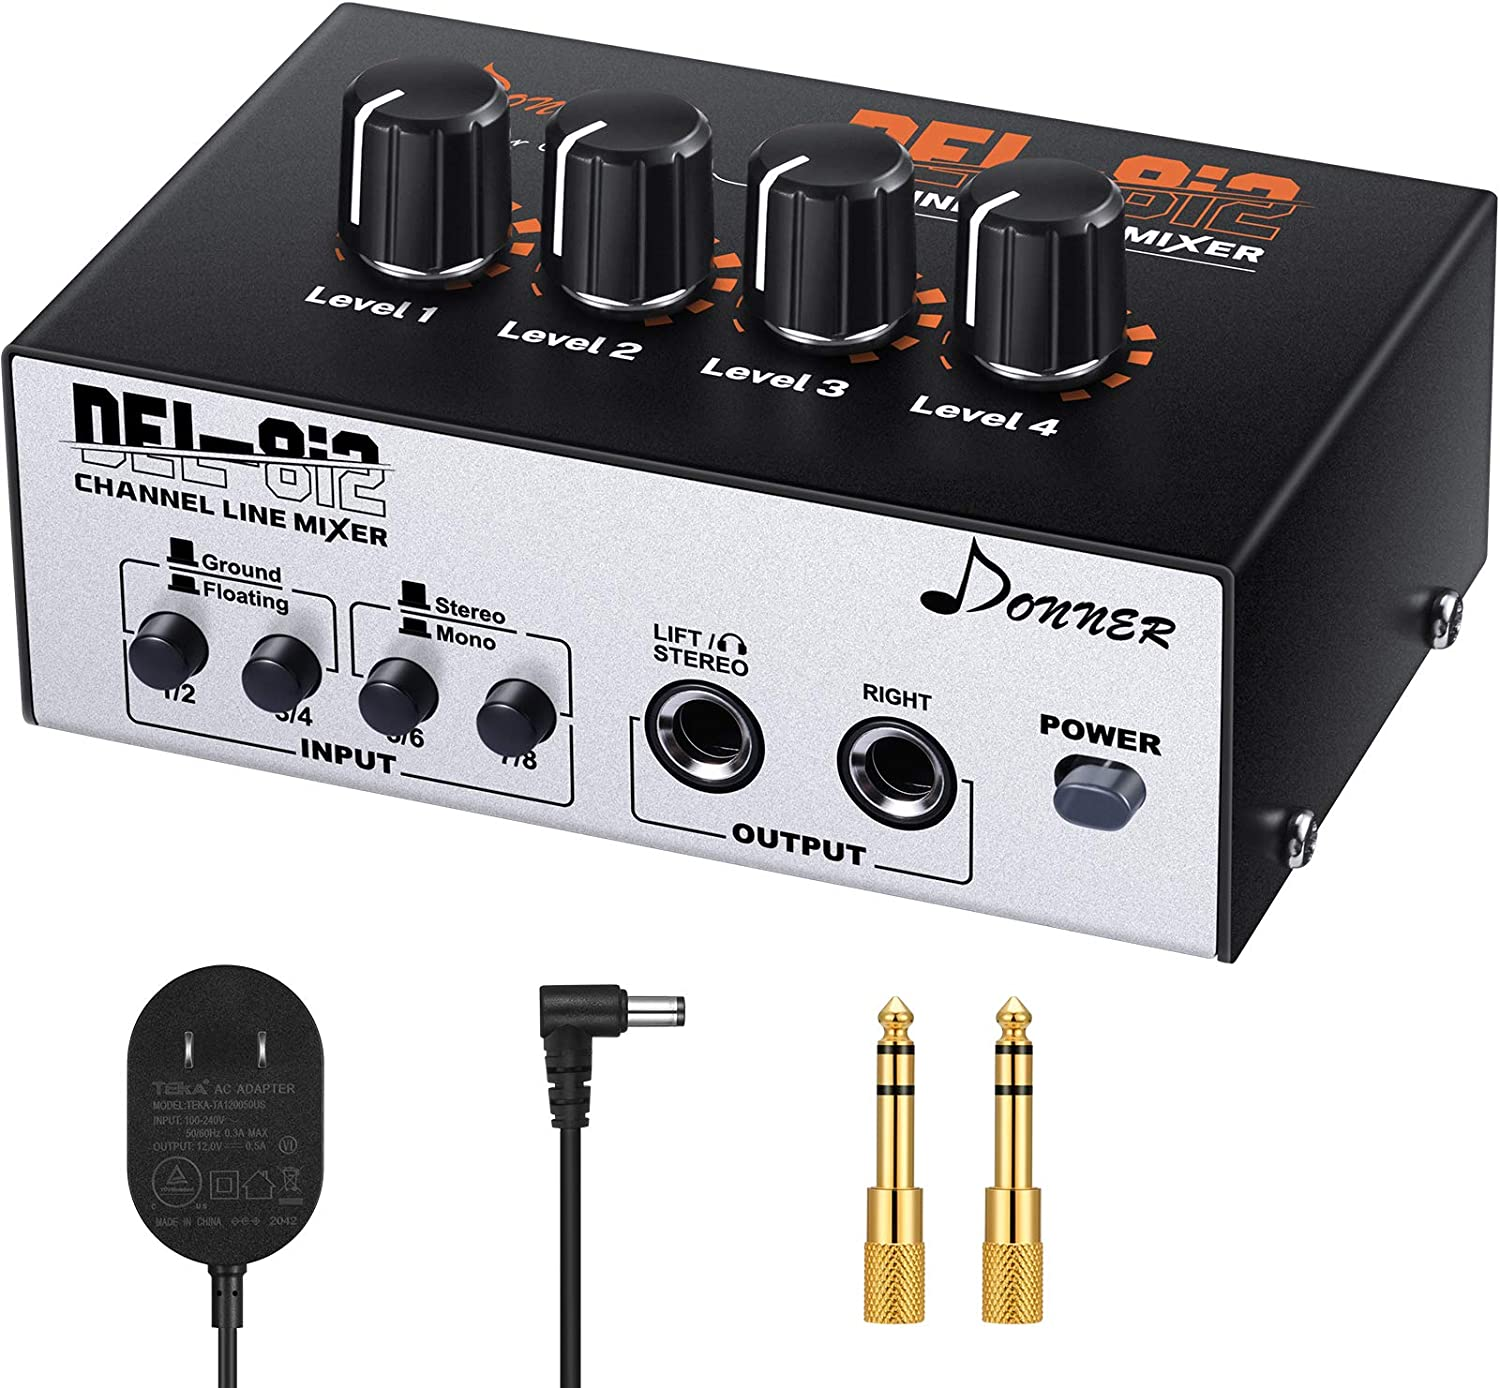 Donner DEL-8i2 4-Channel Stereo Line Headphone Mixer Mini Audio Mixer with Floating//Grounding Ideal for Club or Bar Mixer for Microphones,Guitars,Bass,Keyboards or Stage Sub Mixer-N5